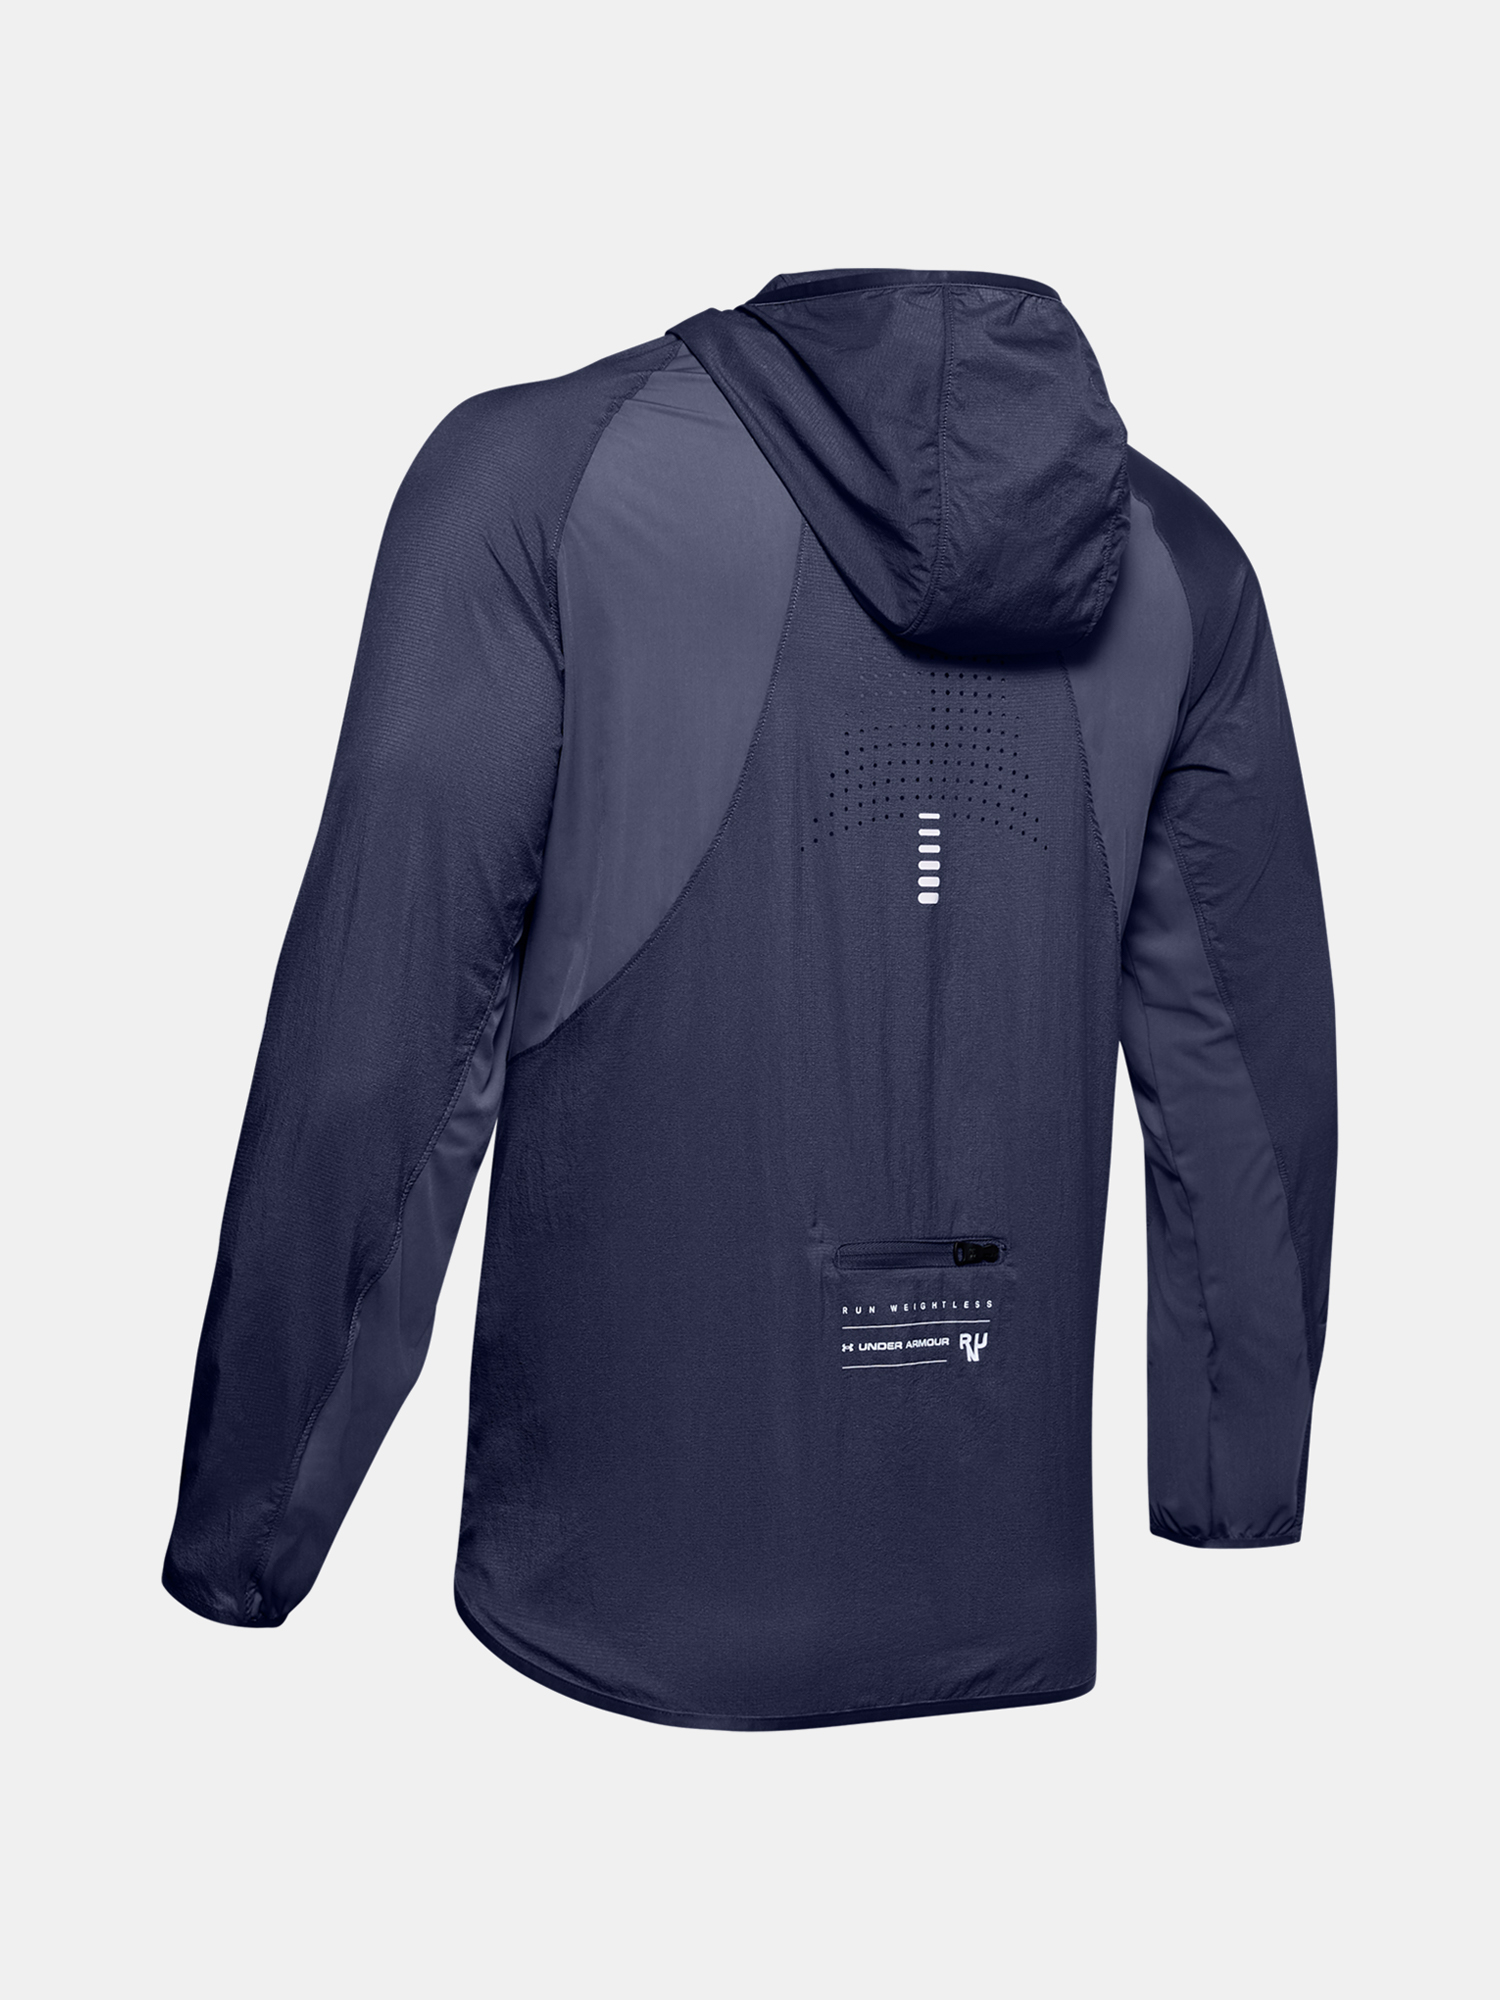 Bunda Under Armour M  Qlifier Weightless Packable Jacke (4)